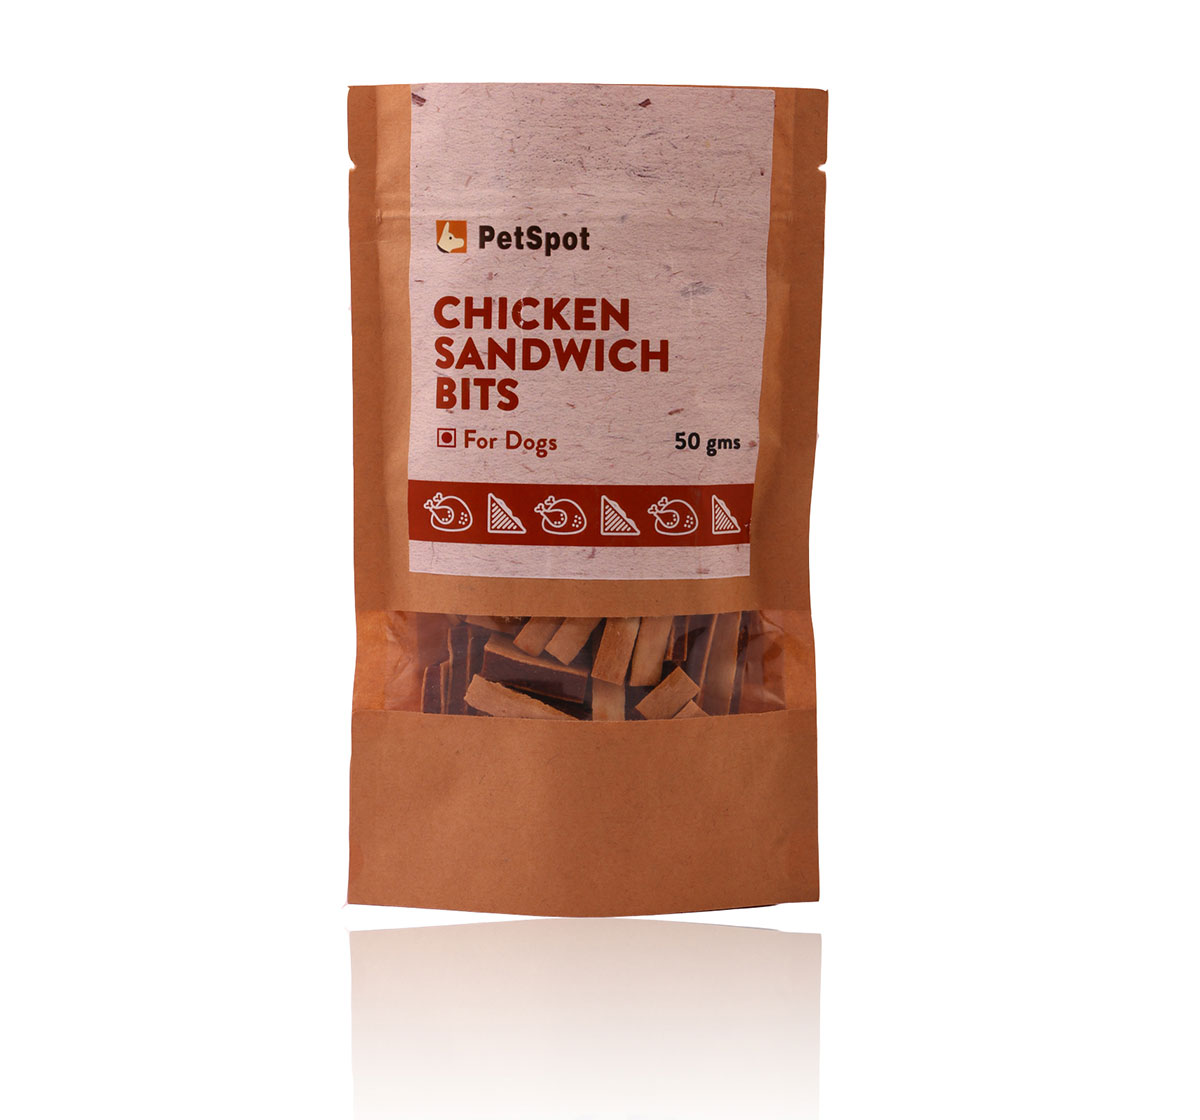 PetSpot Chicken Sandwich Bits - 50 gm